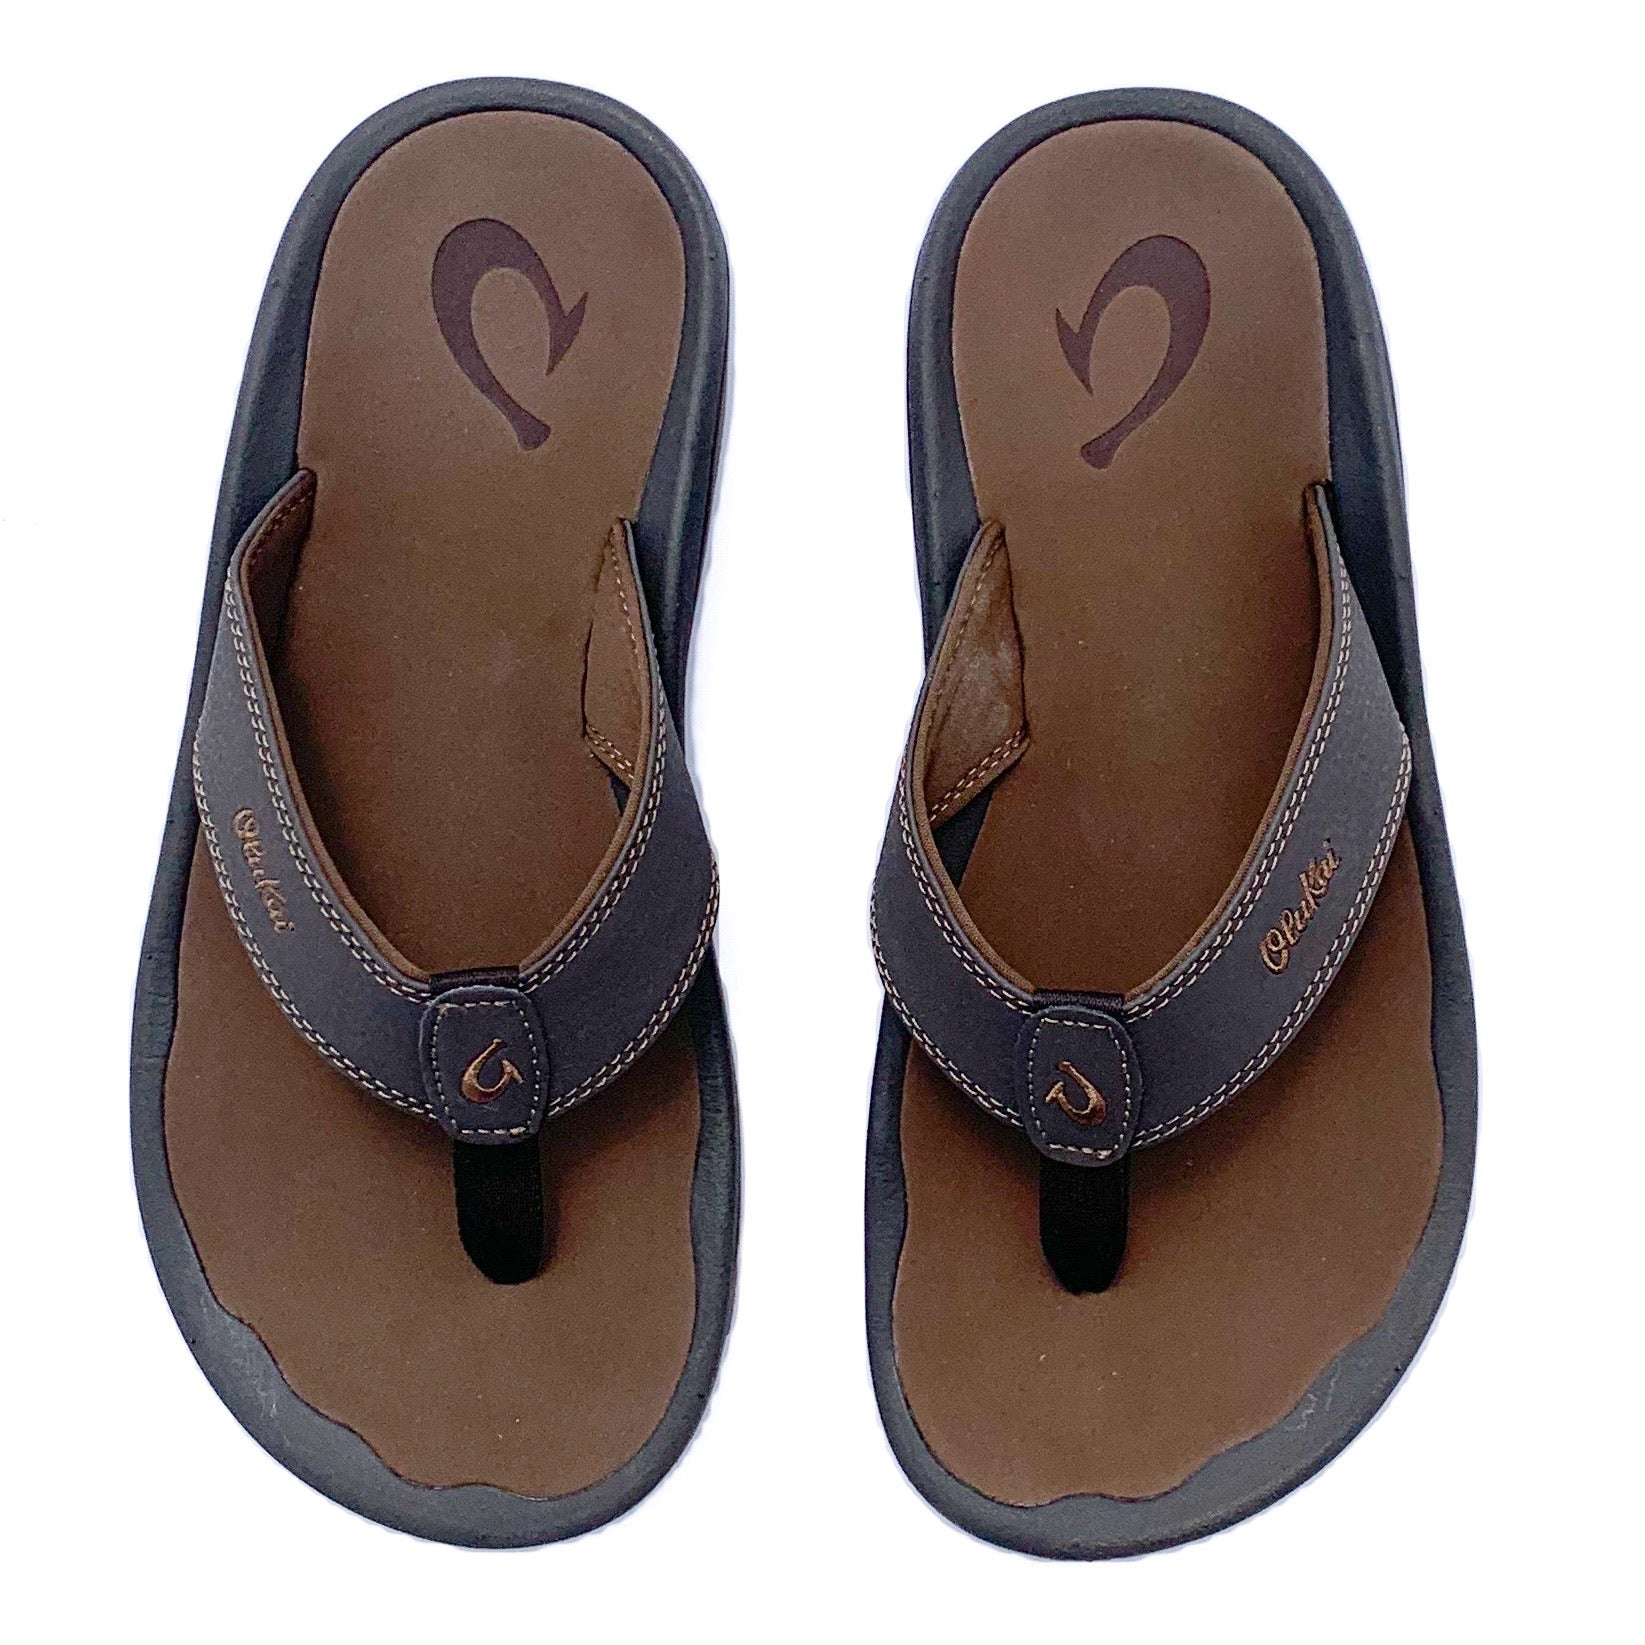 OluKai Ohana Sandals - Dark Java / Ray